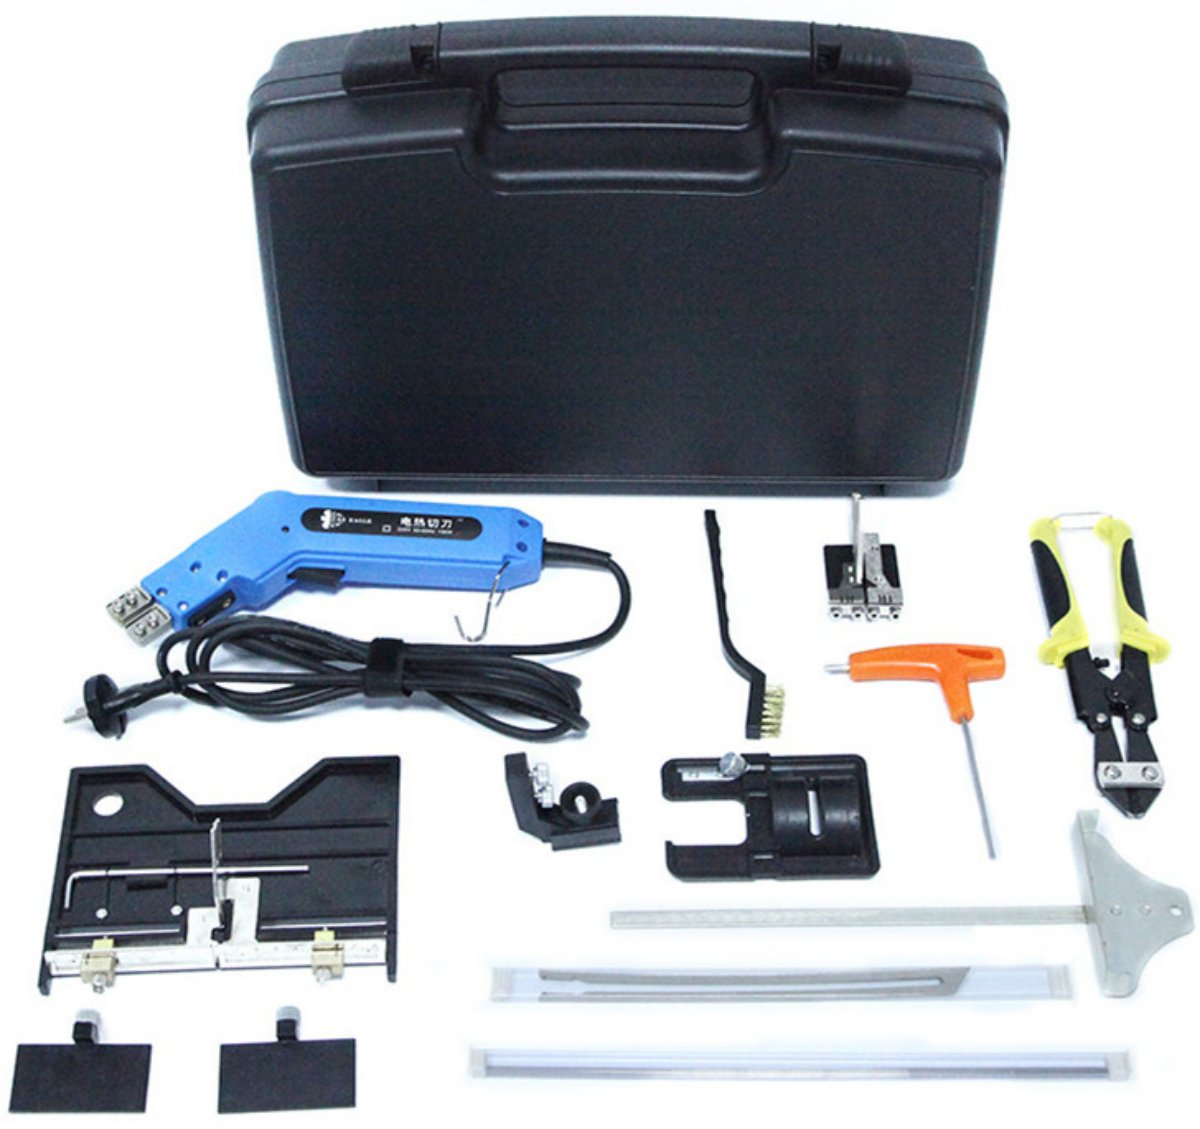 Handheld Hot Knife Wire Foam Heat Cutter Kit with Blades & Accessories 150W,110V